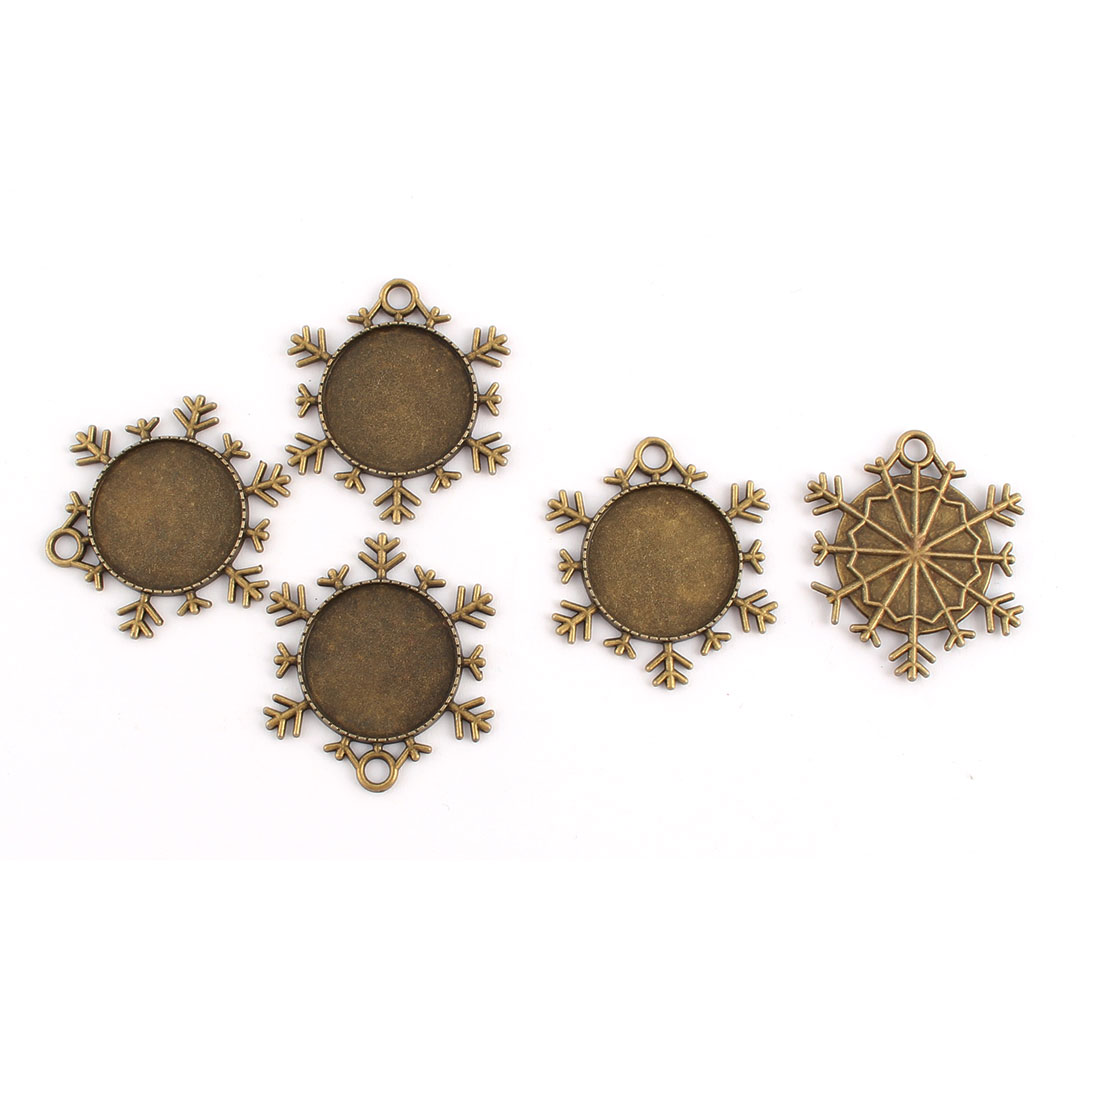 Jewelry Copper Alloy Snowflake Shaped Vintage Style Pendant Trays Bronze Tone 25mm Inner Dia 5pcs